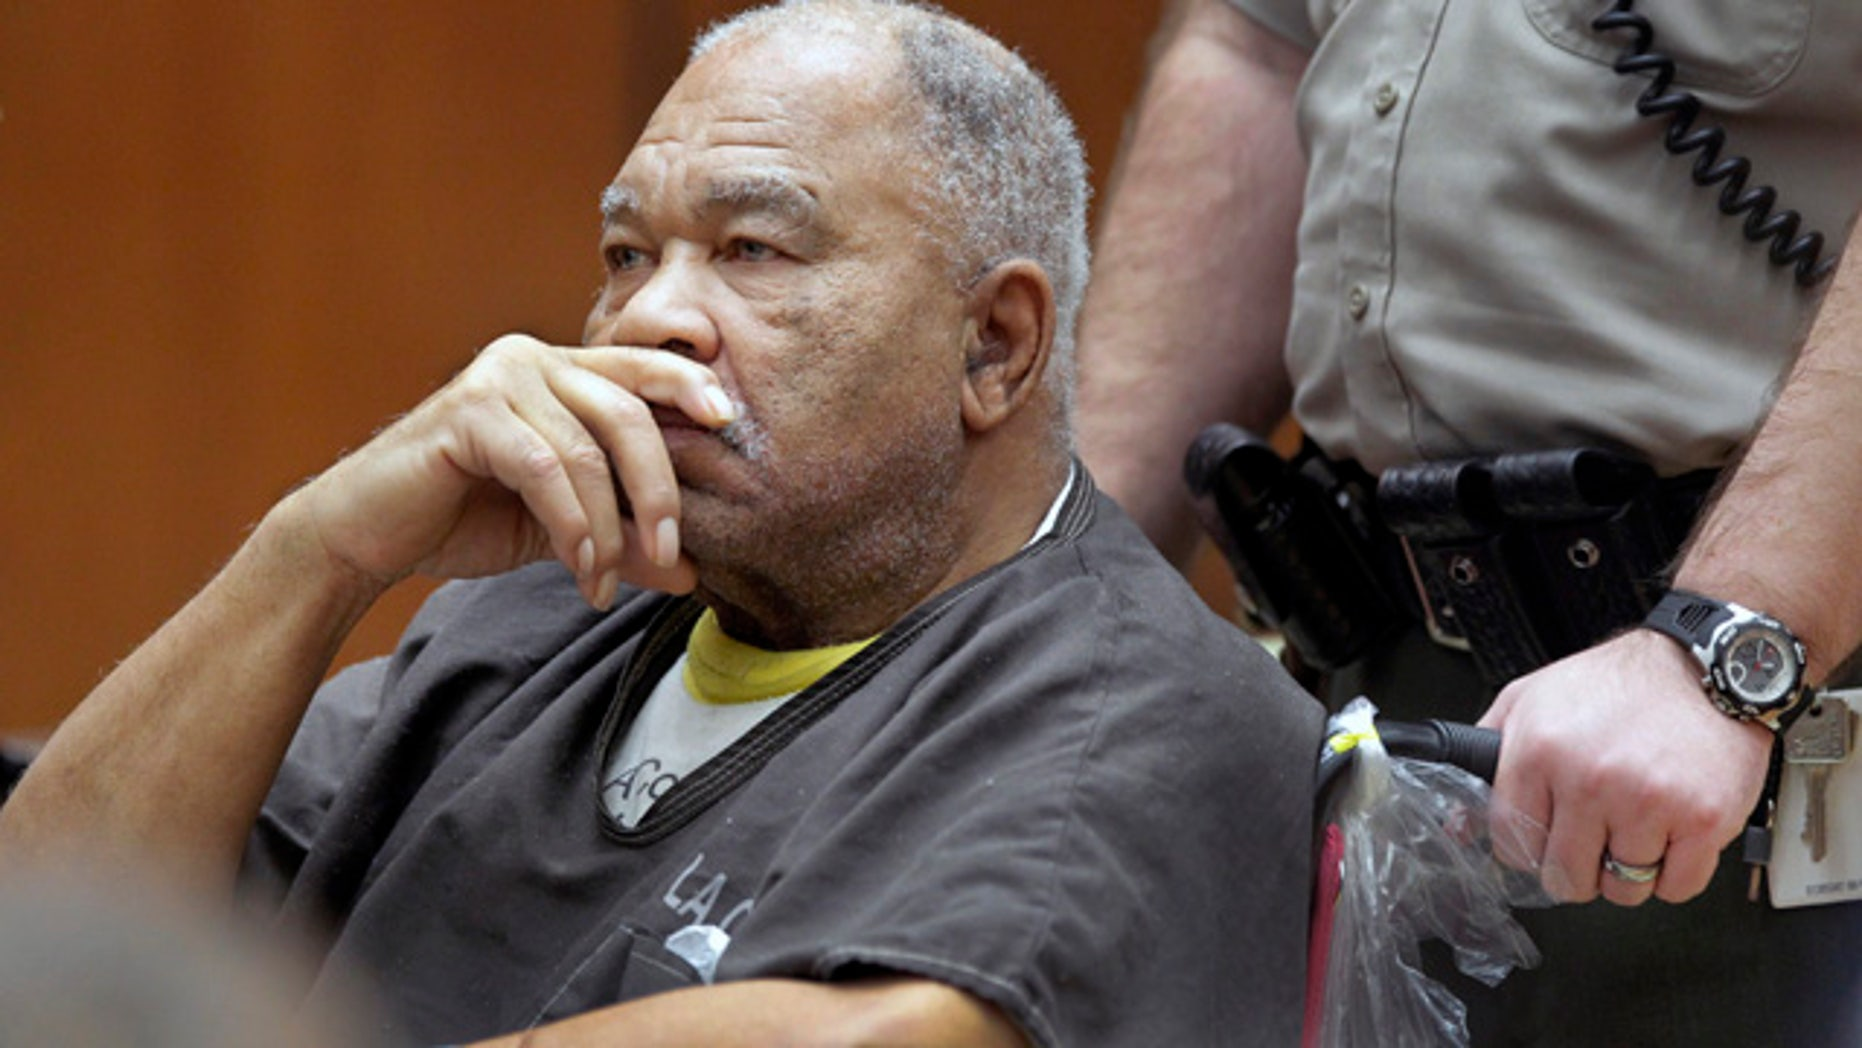 FILE - In this Monday, March 4, 2013 file photo, Samuel Little appears at Superior Court in Los Angeles. (AP Photo/Damian Dovarganes,File)